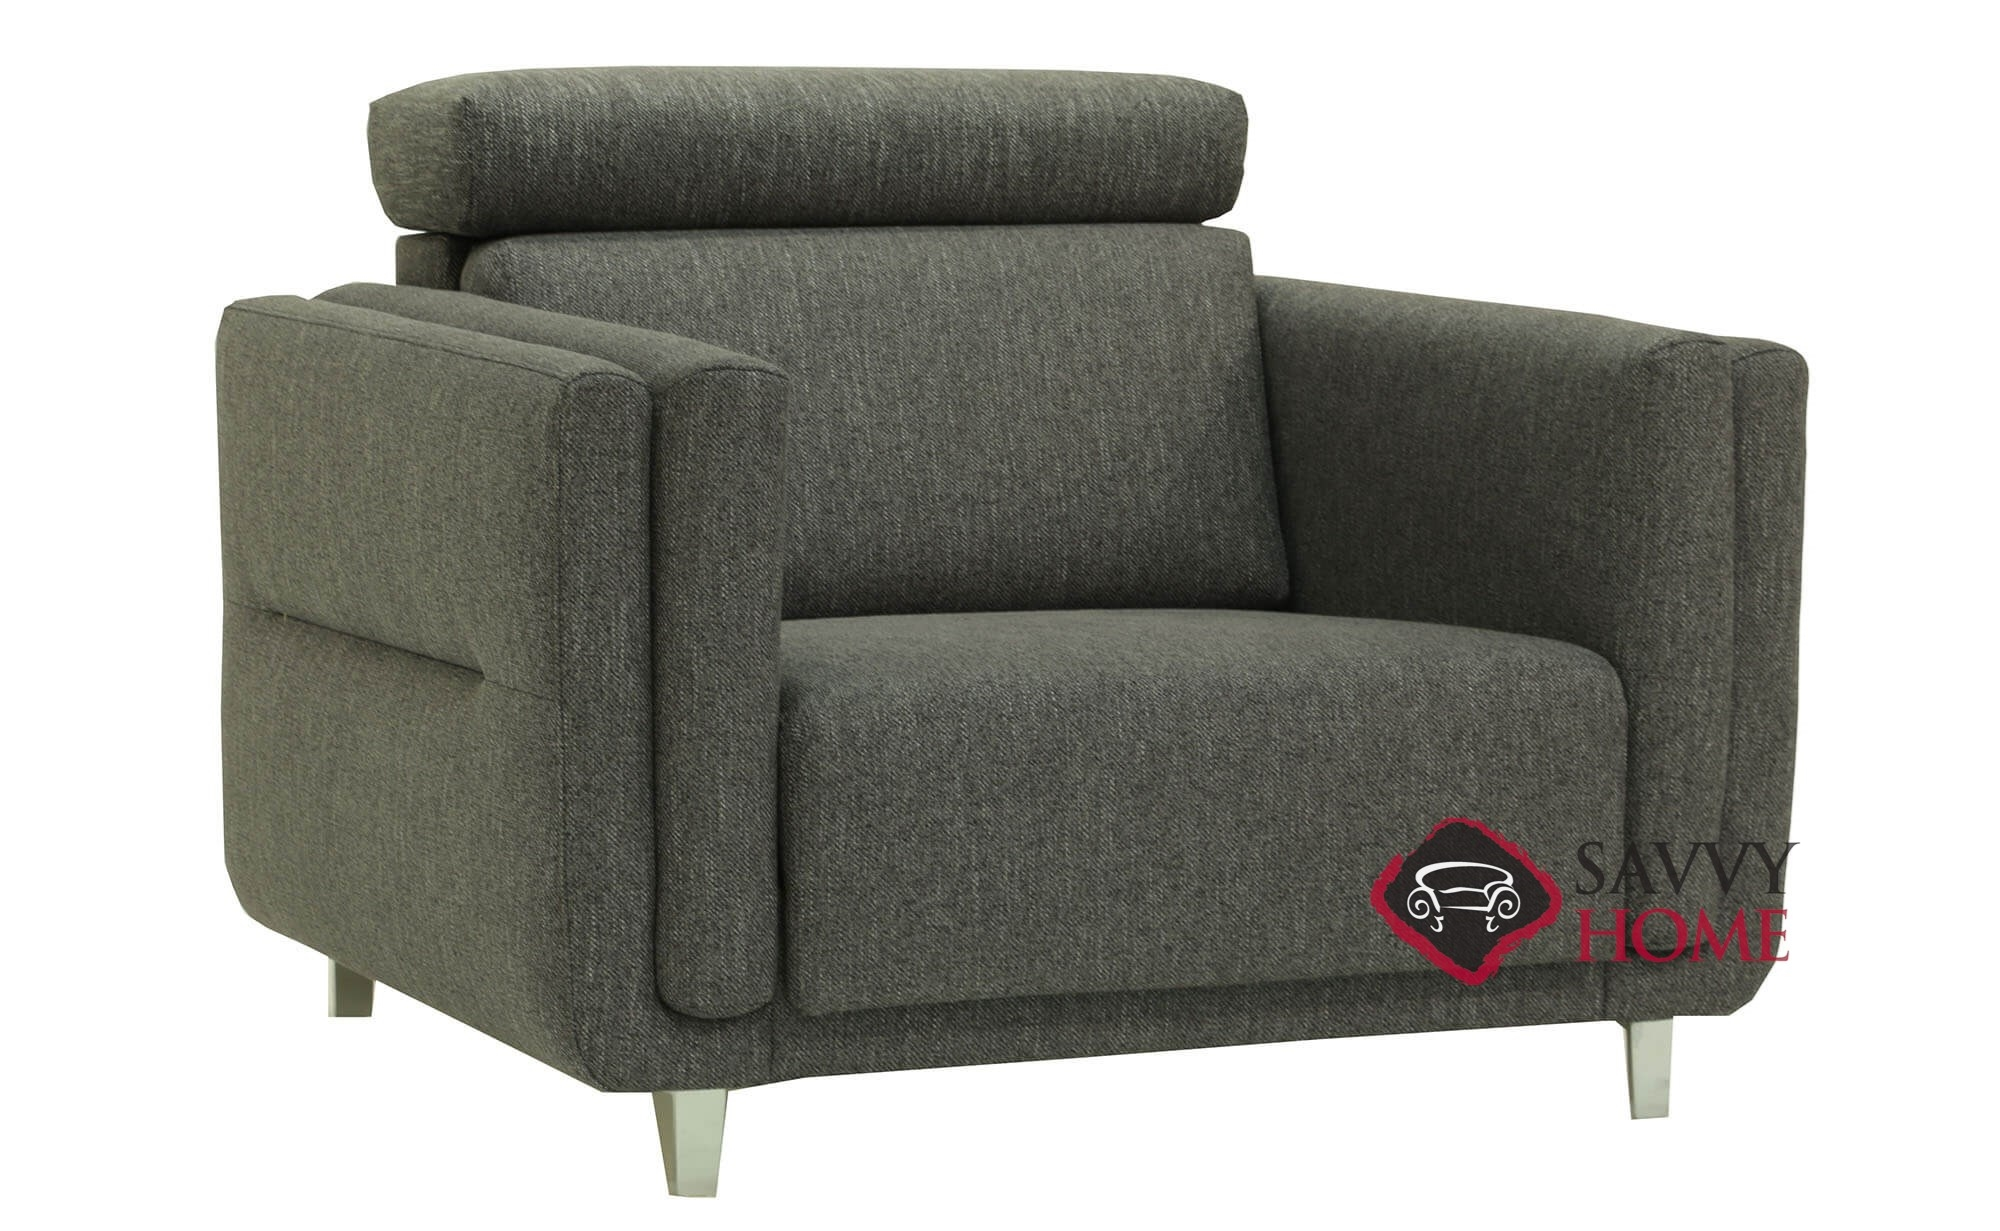 Swell Paris Chair Sofa Bed By Luonto Beatyapartments Chair Design Images Beatyapartmentscom